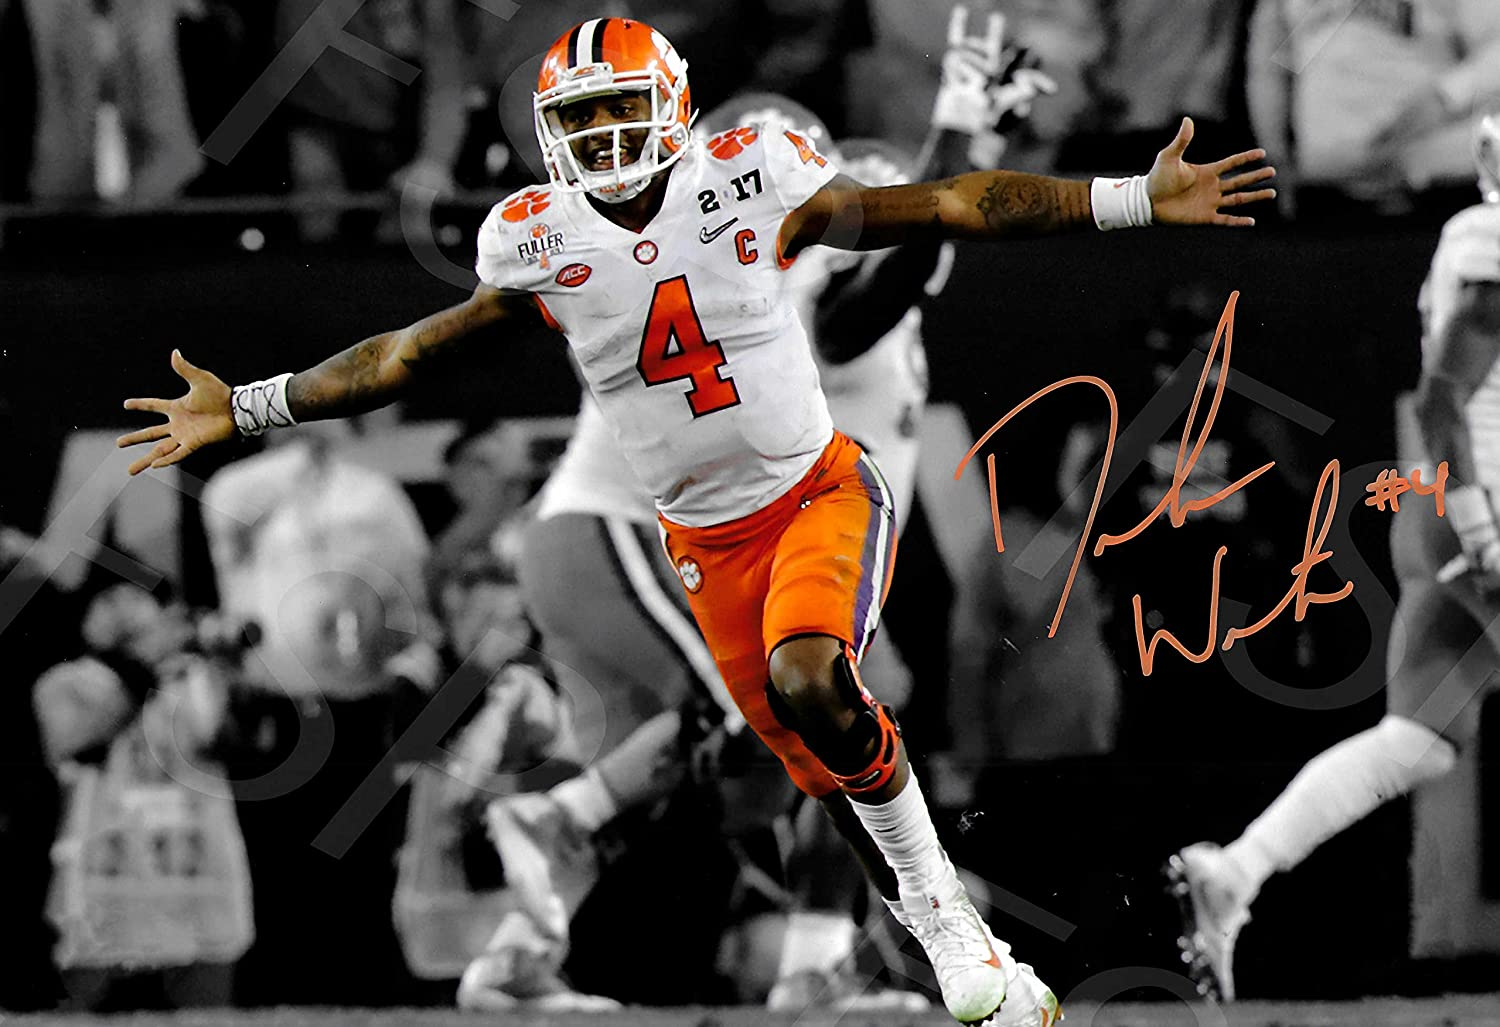 Deshaun Watson Autographレプリカポスター印刷 – Clemson Tigers Watson – – Celebration Tigers B07CN1H9N6, 610アメリカ屋:95b00036 --- hanjindnb.su